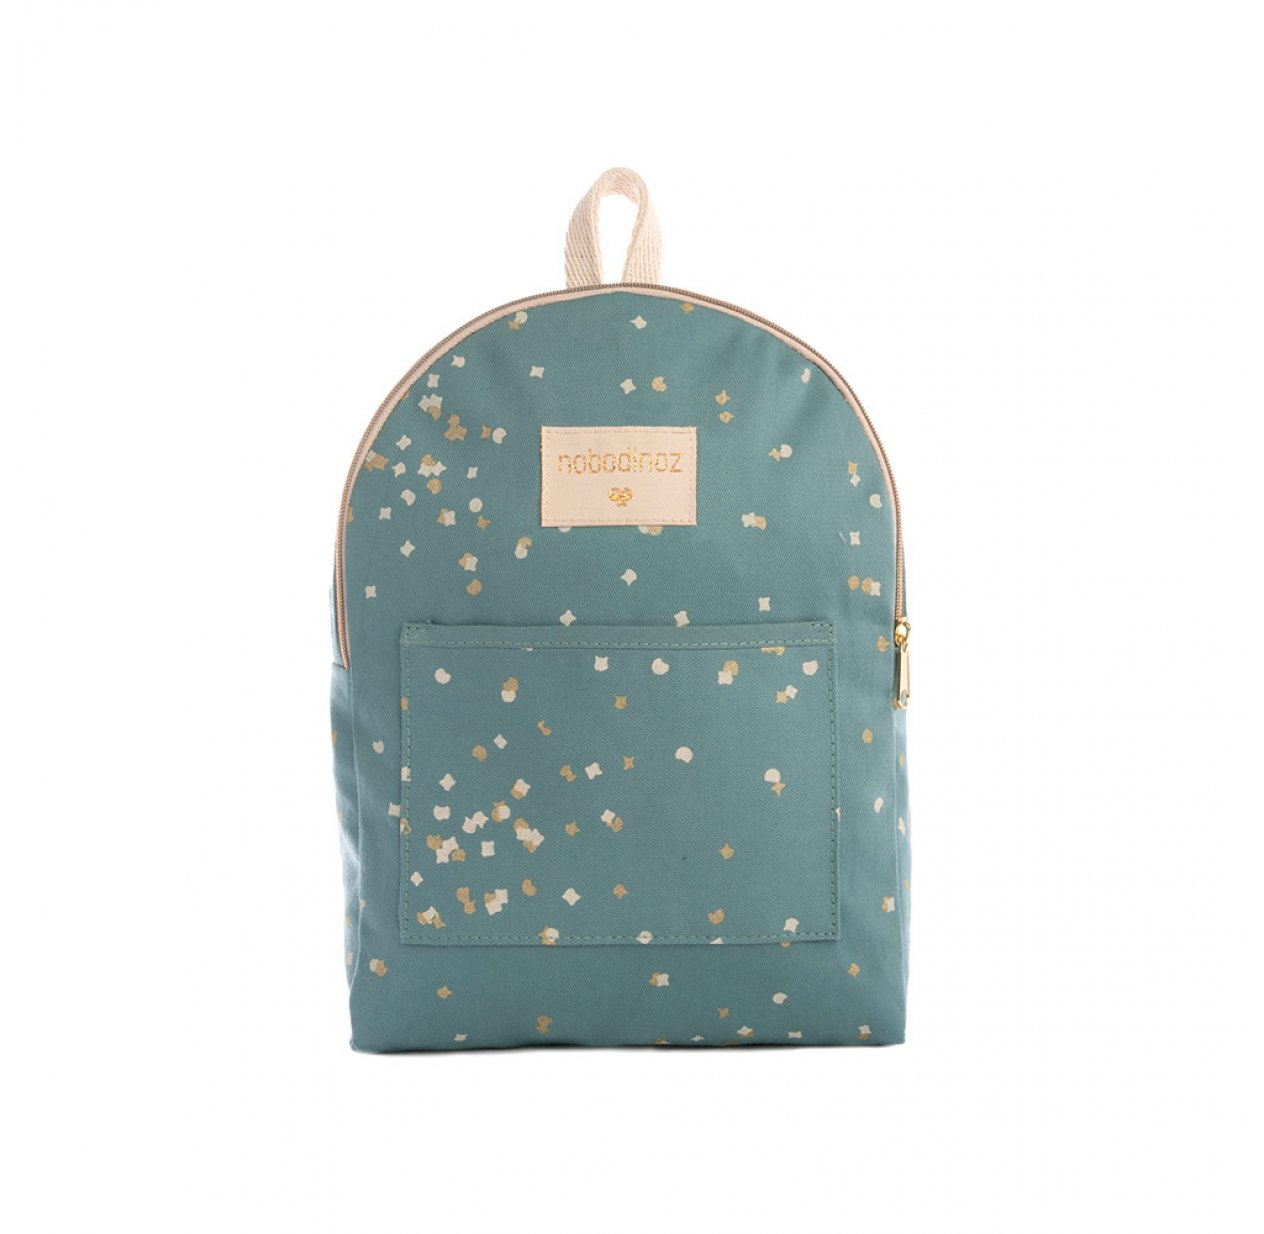 Mini sac à dos Too Cool Gold Confetti - Vert celadon